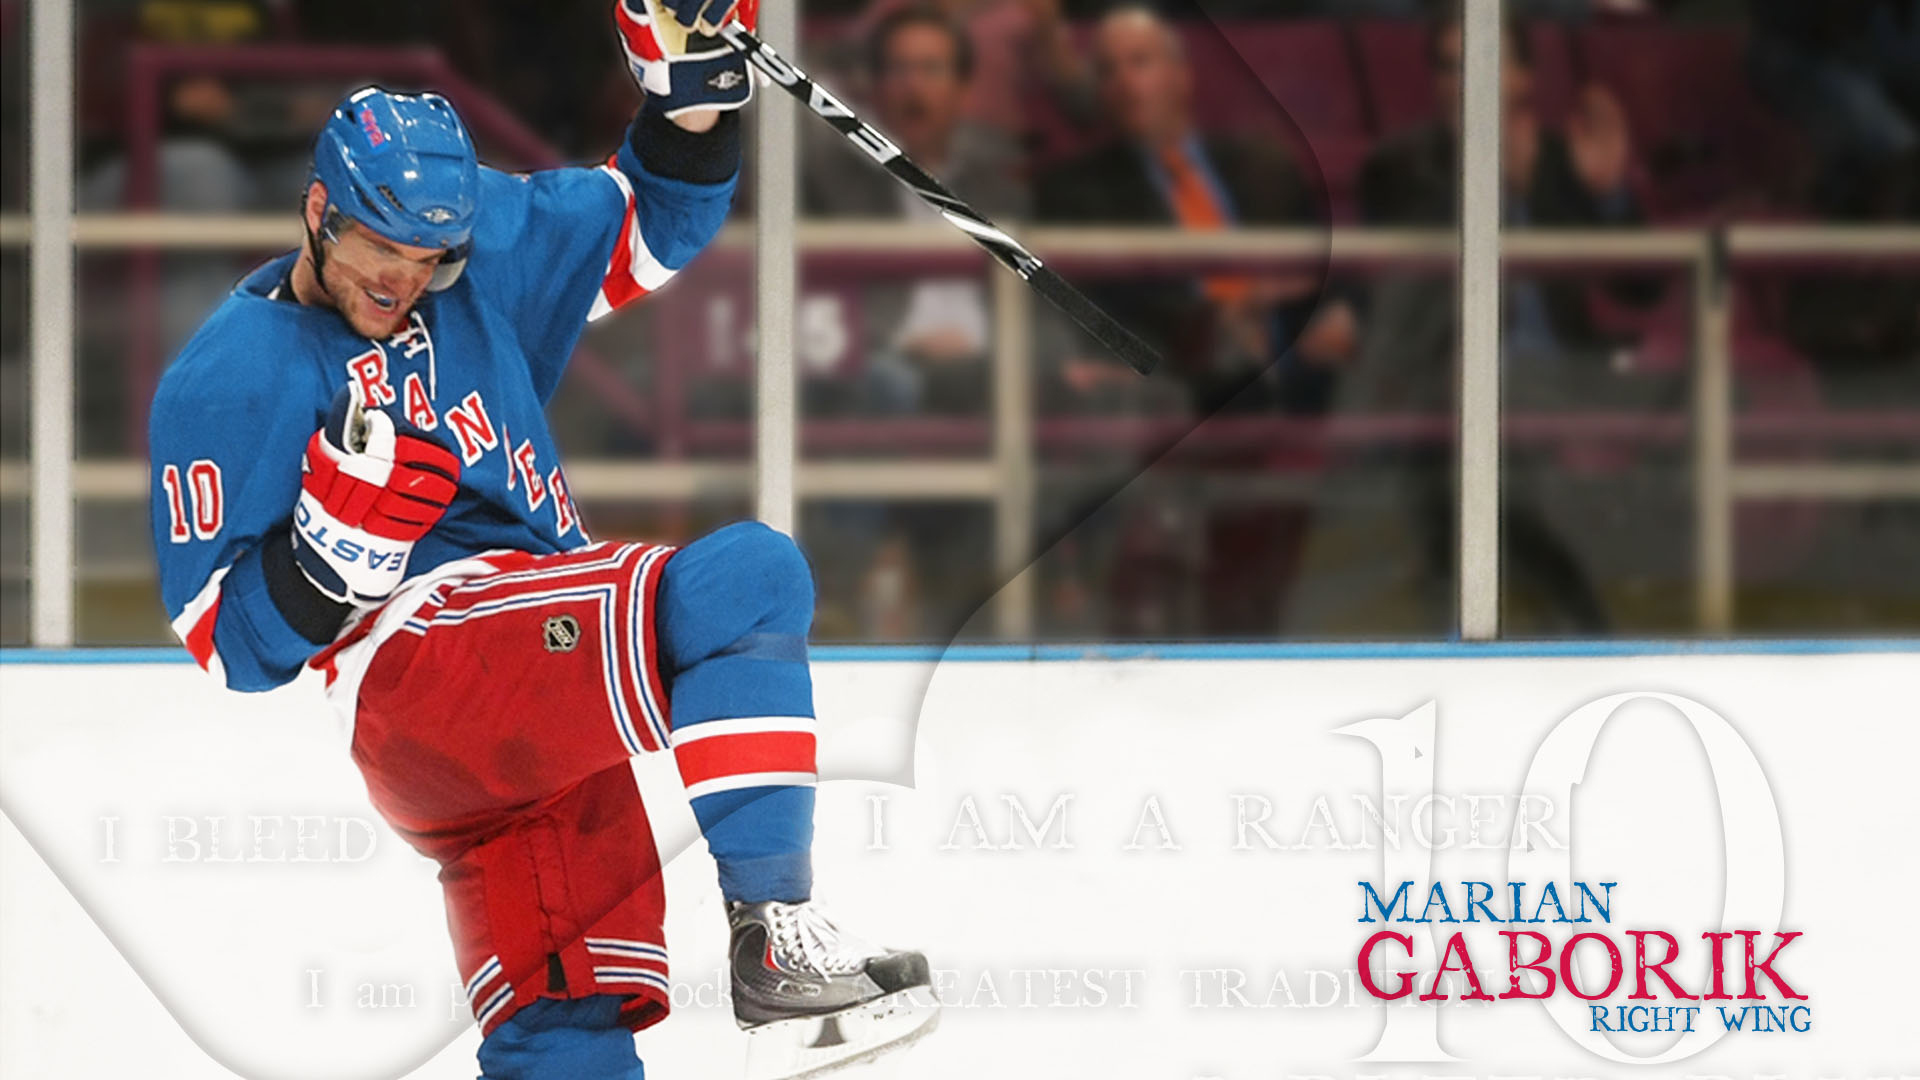 Wallpaper download Marian Gaborik (New York Rangers)